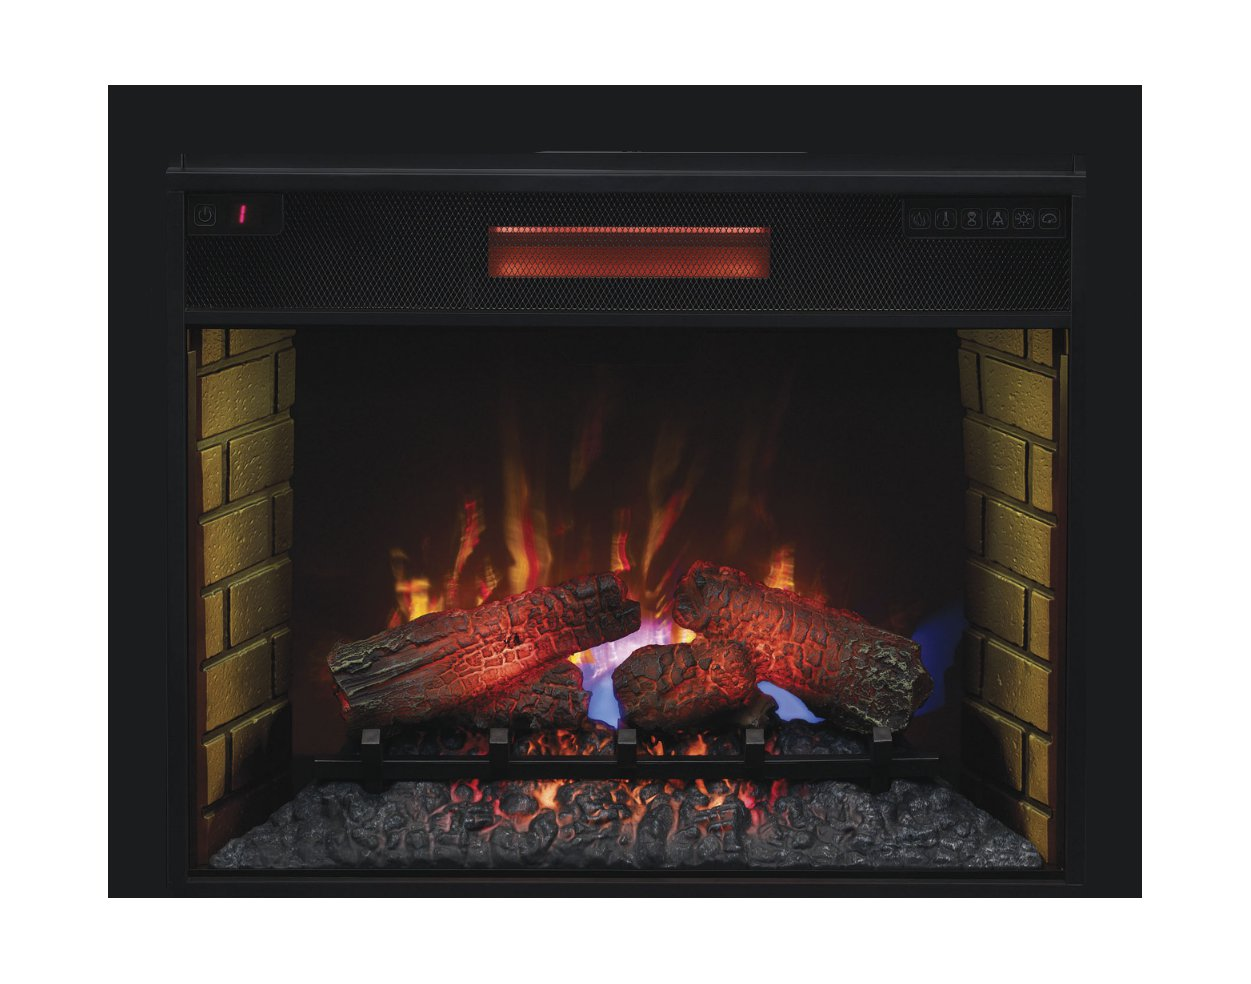 great fireplace wall amazing lowes accessory image electric sale of fireplacejburgh mount on homes